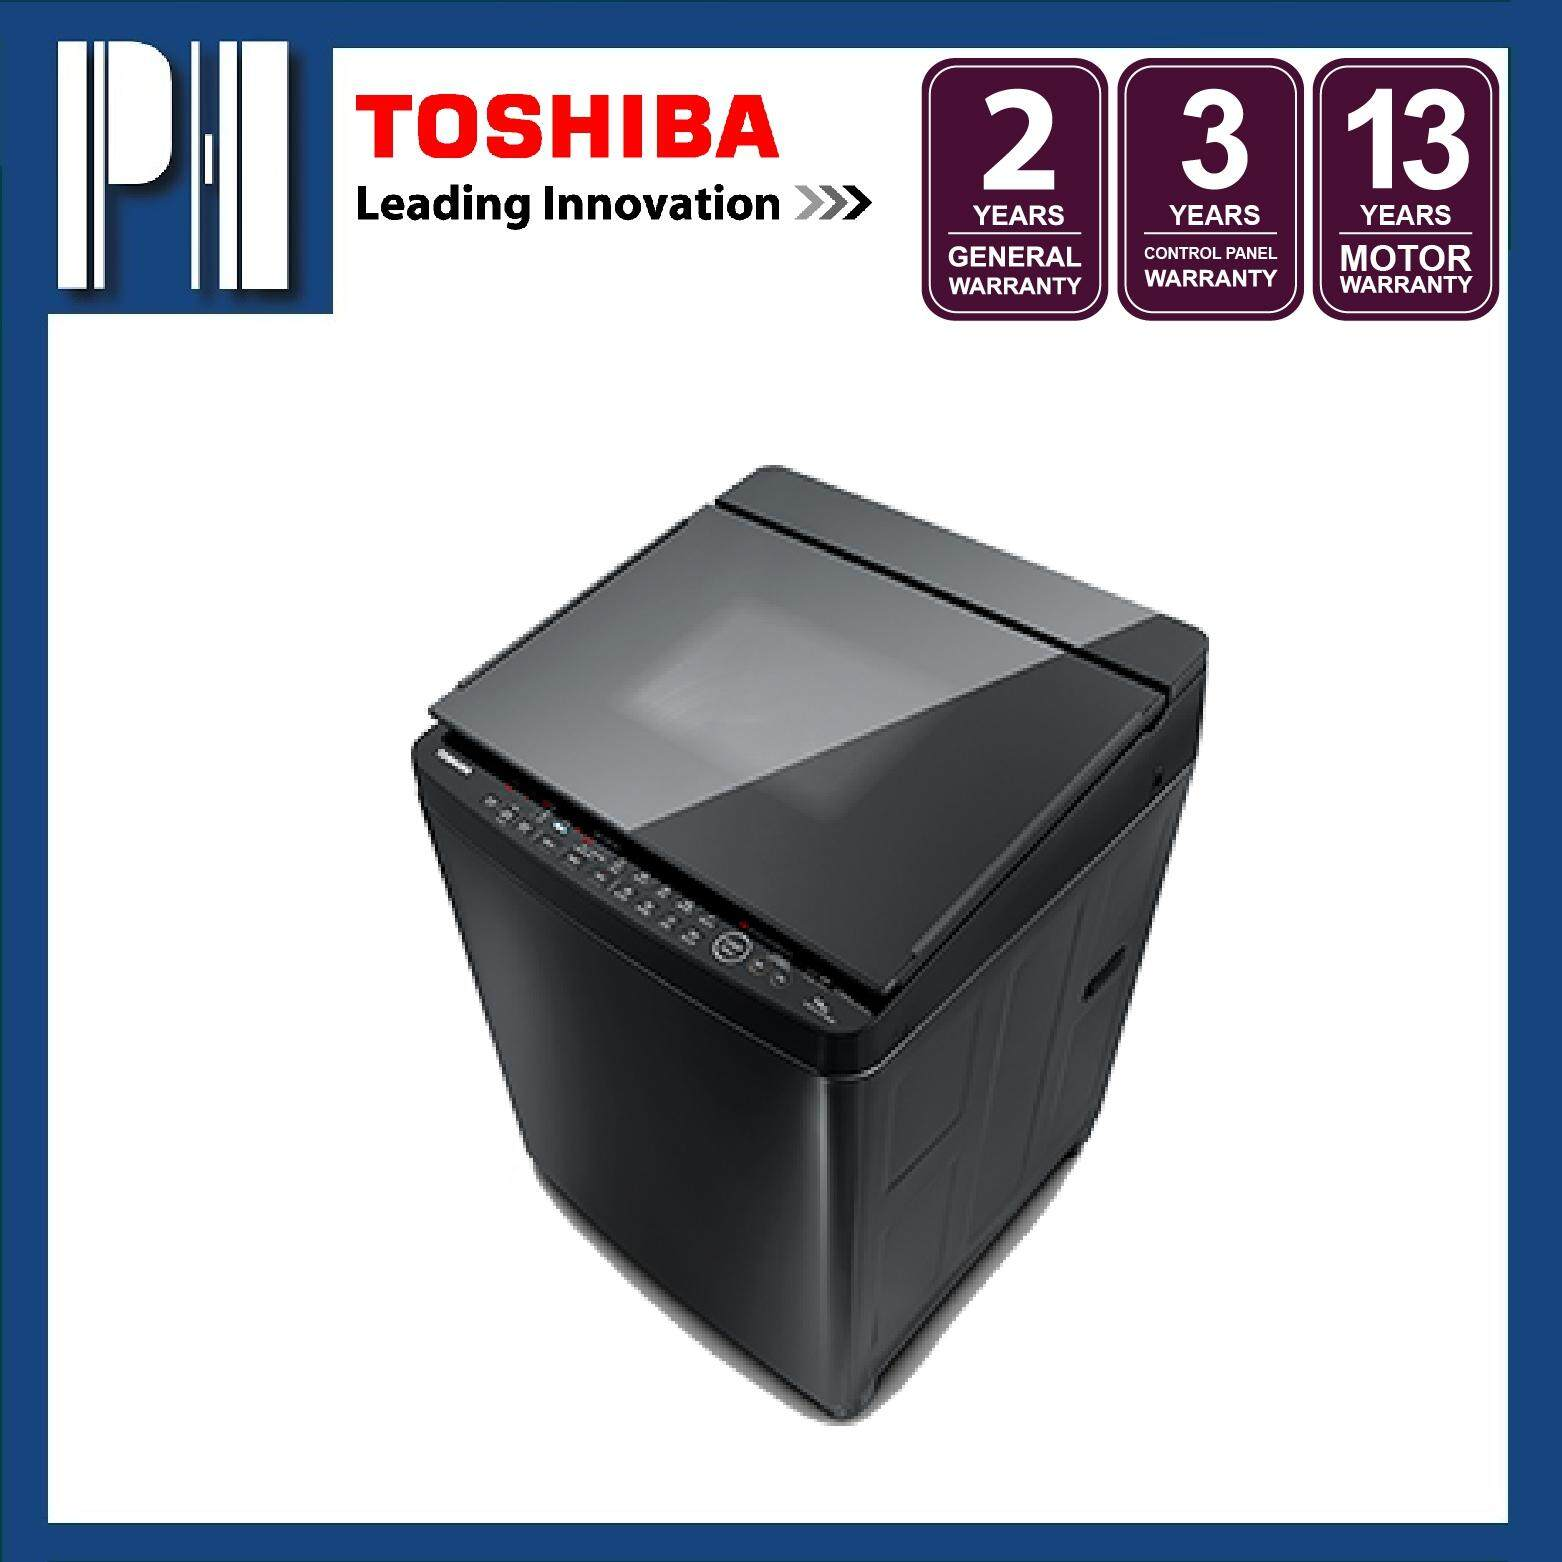 TOSHIBA AW-DG1600WM(SK) 15KG S-DD Inverter Fully Auto Washing Machine/Washer